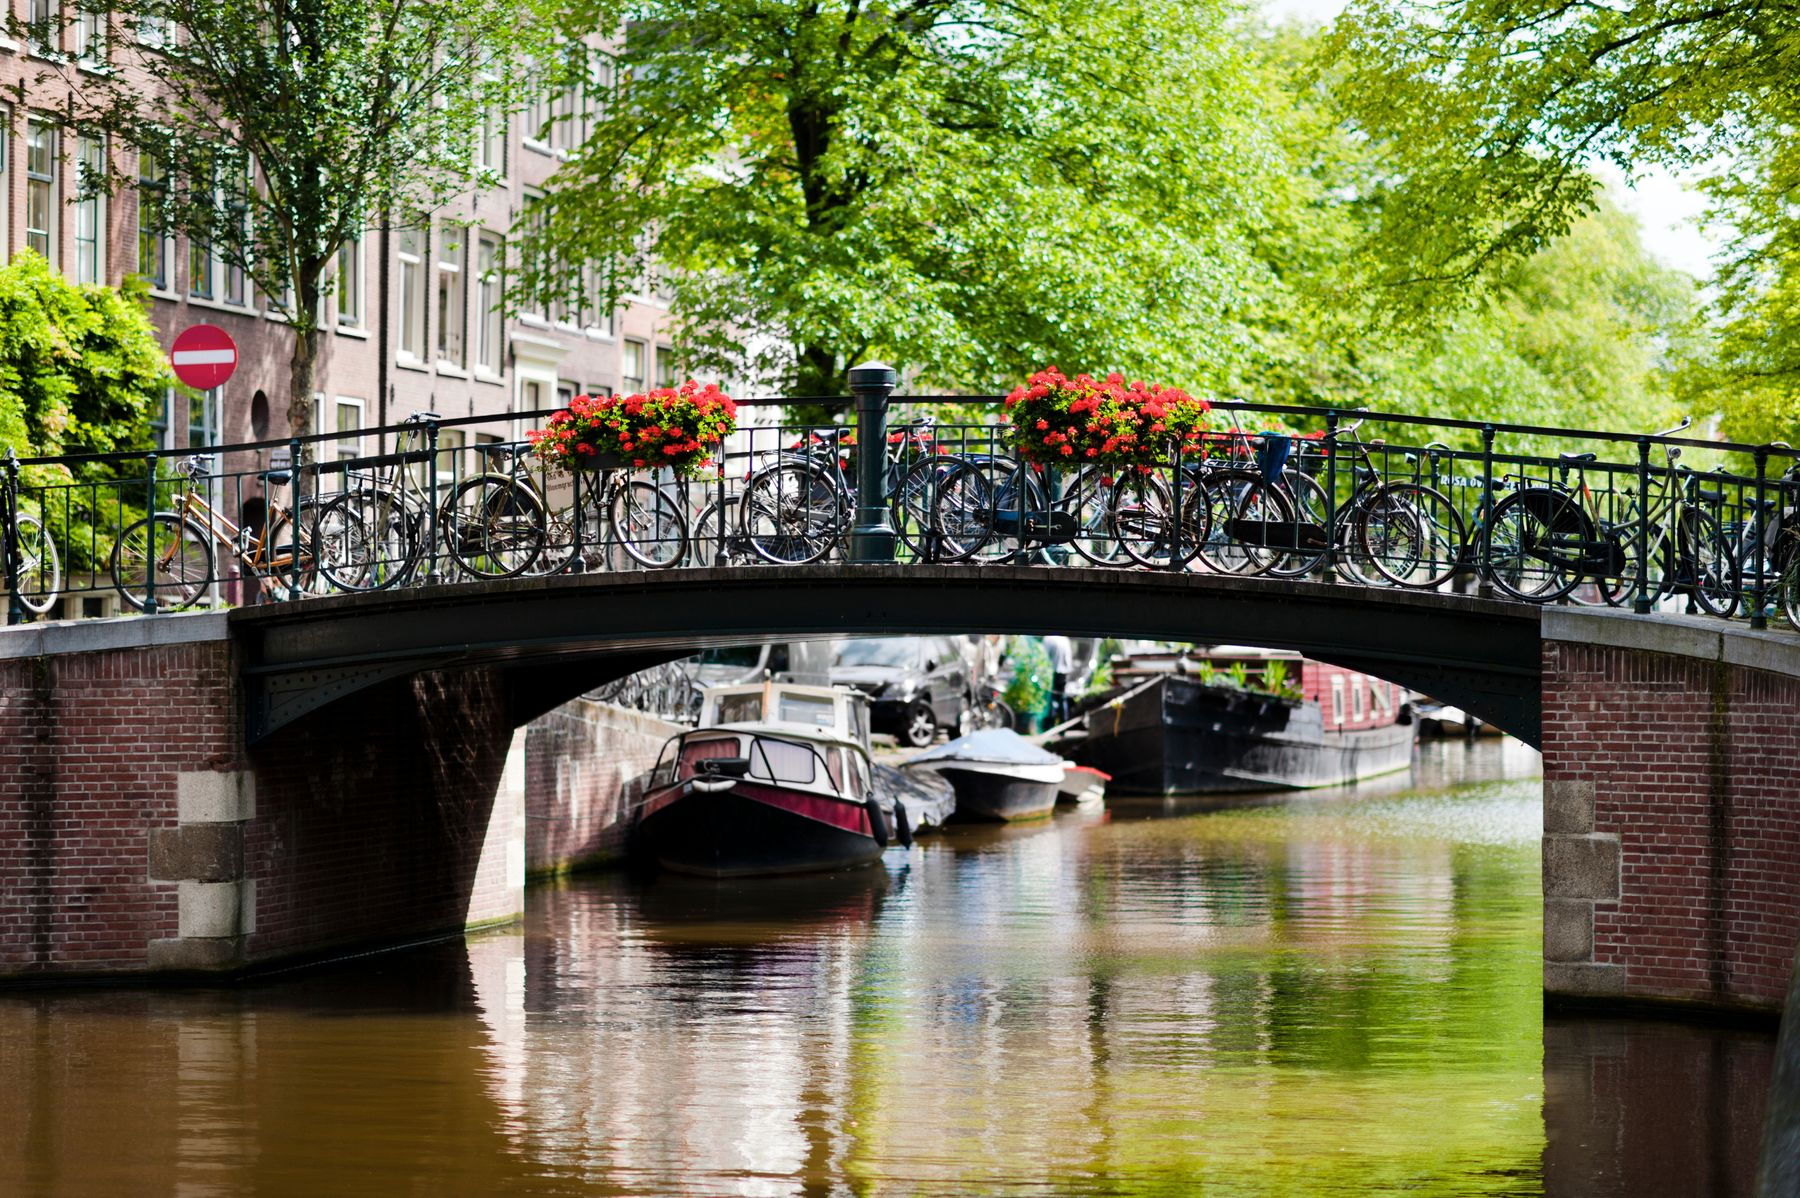 canal and bridge with bikes leaning against the bridge in Amsterdam